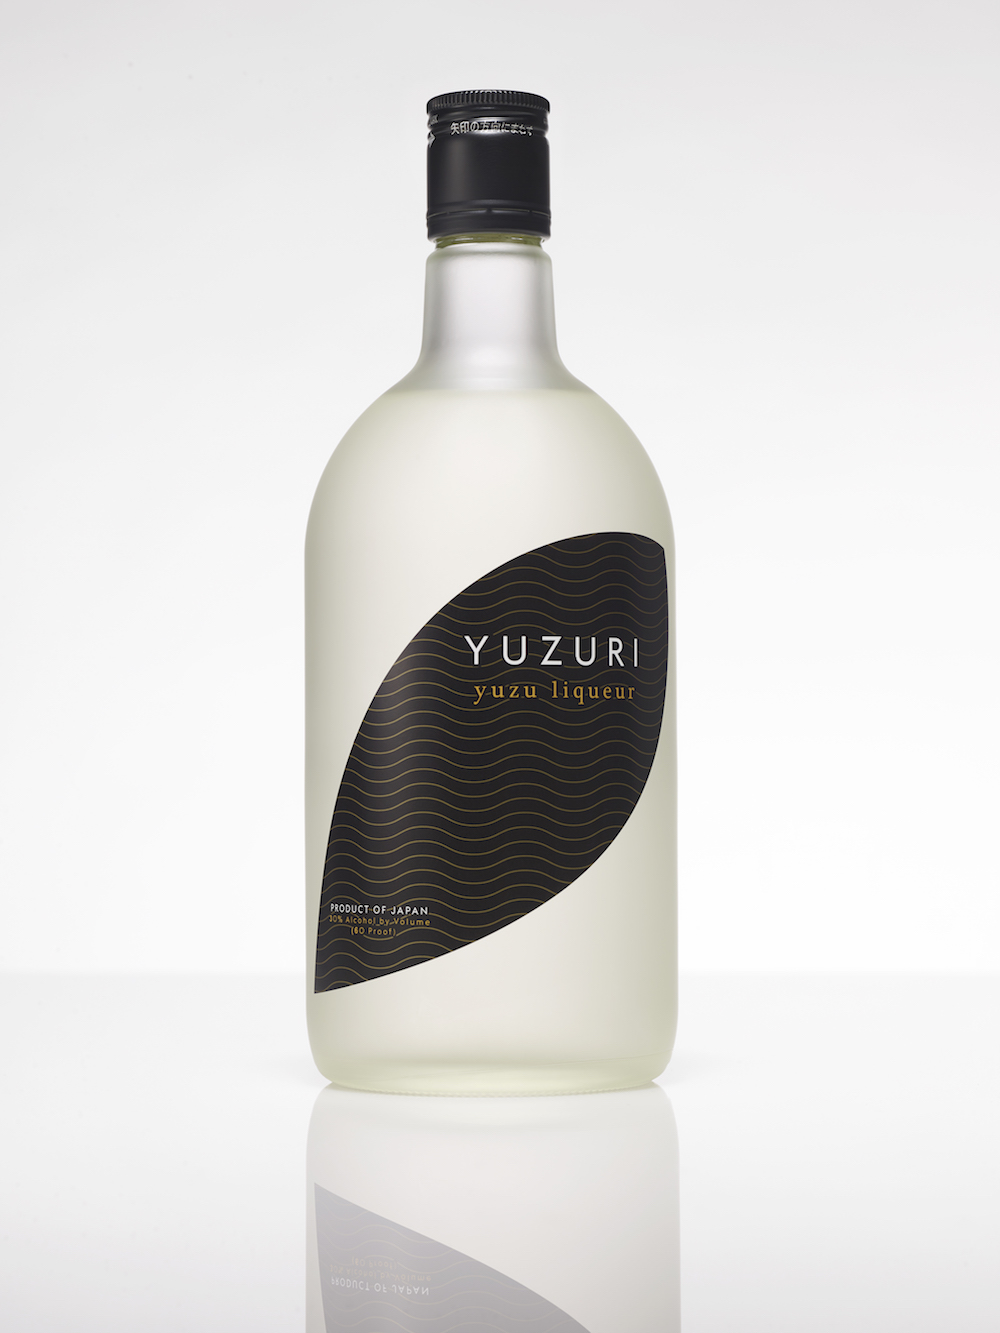 yuzuri-bottle-blog1117.jpg